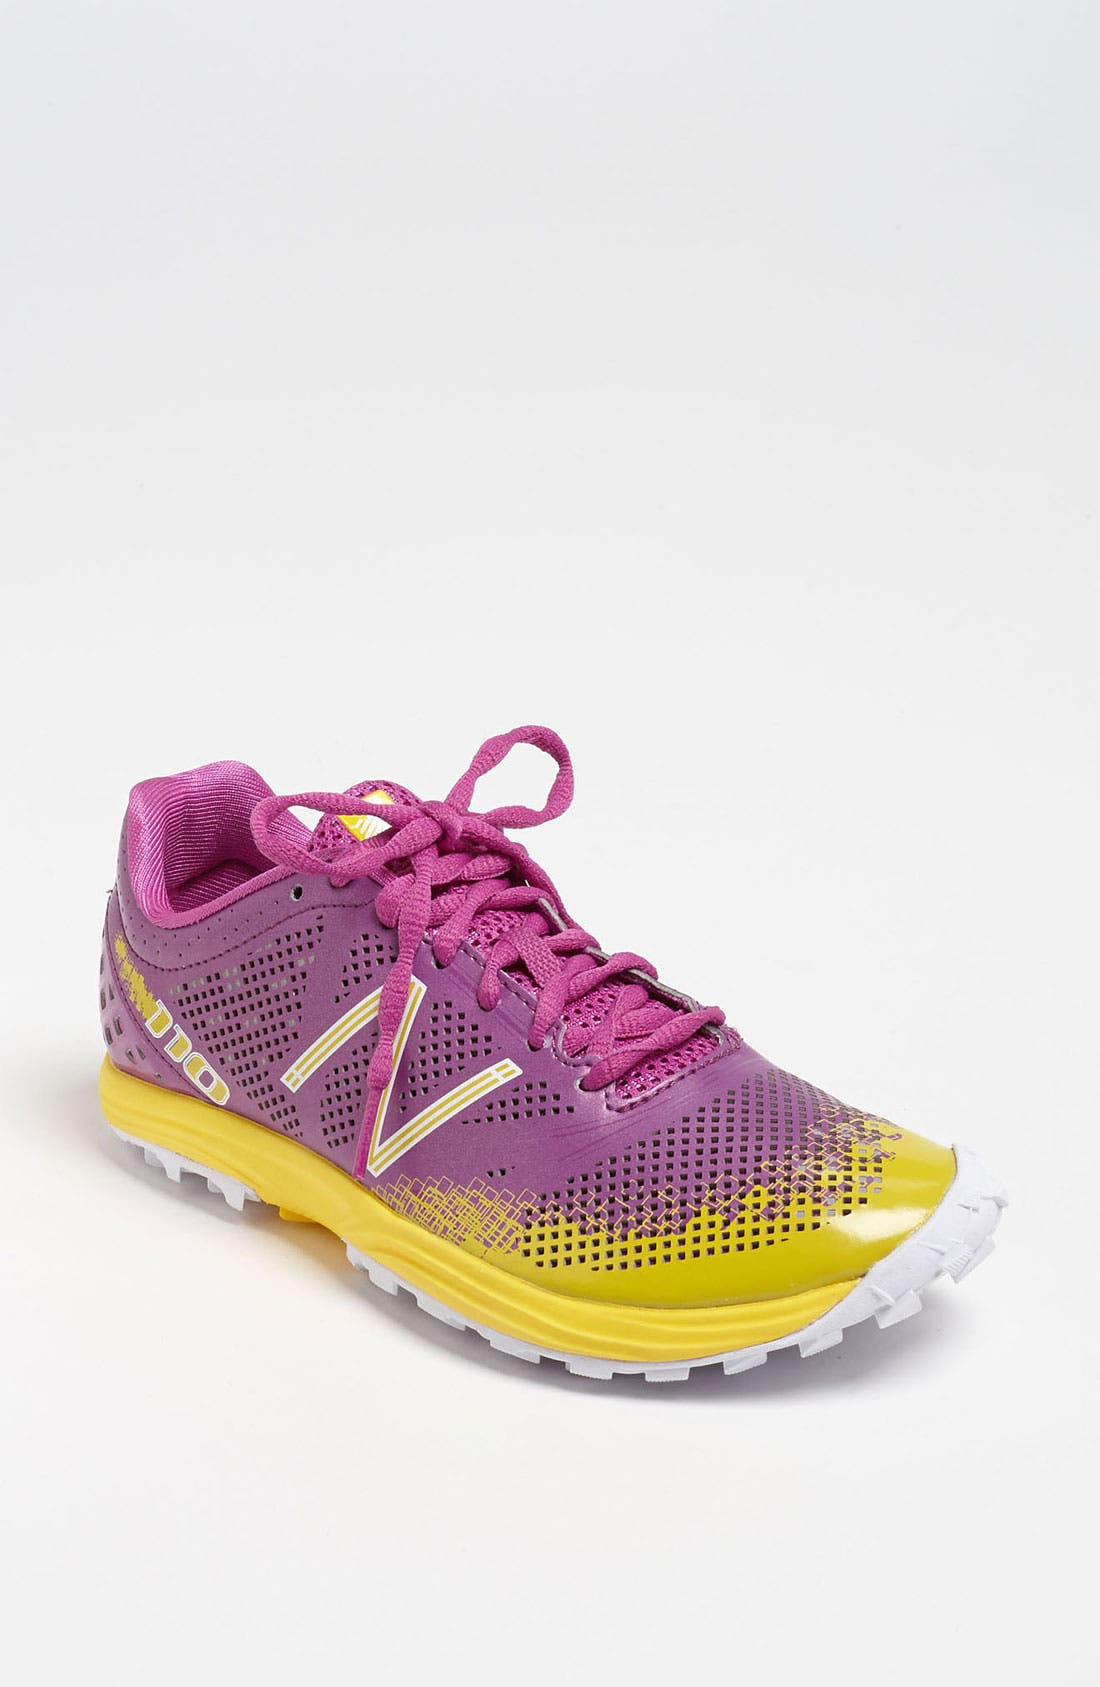 Main Image - New Balance '110 V1' Trail Running Shoe (Women)(Retail Price: $89.95)